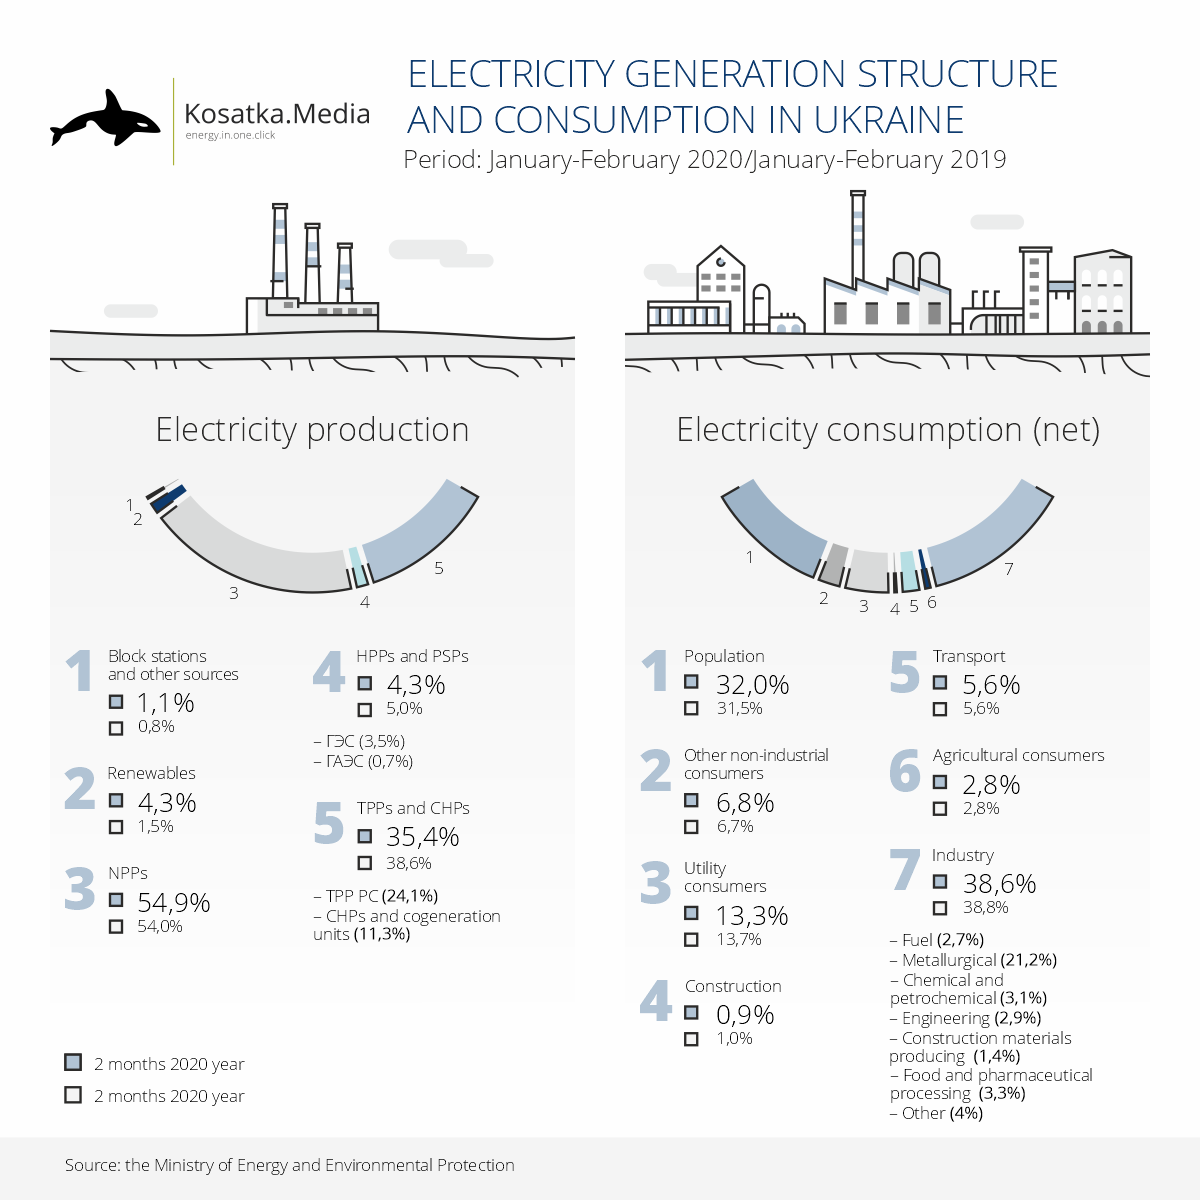 Structure of Generation and Electricity Consumption in Ukraine